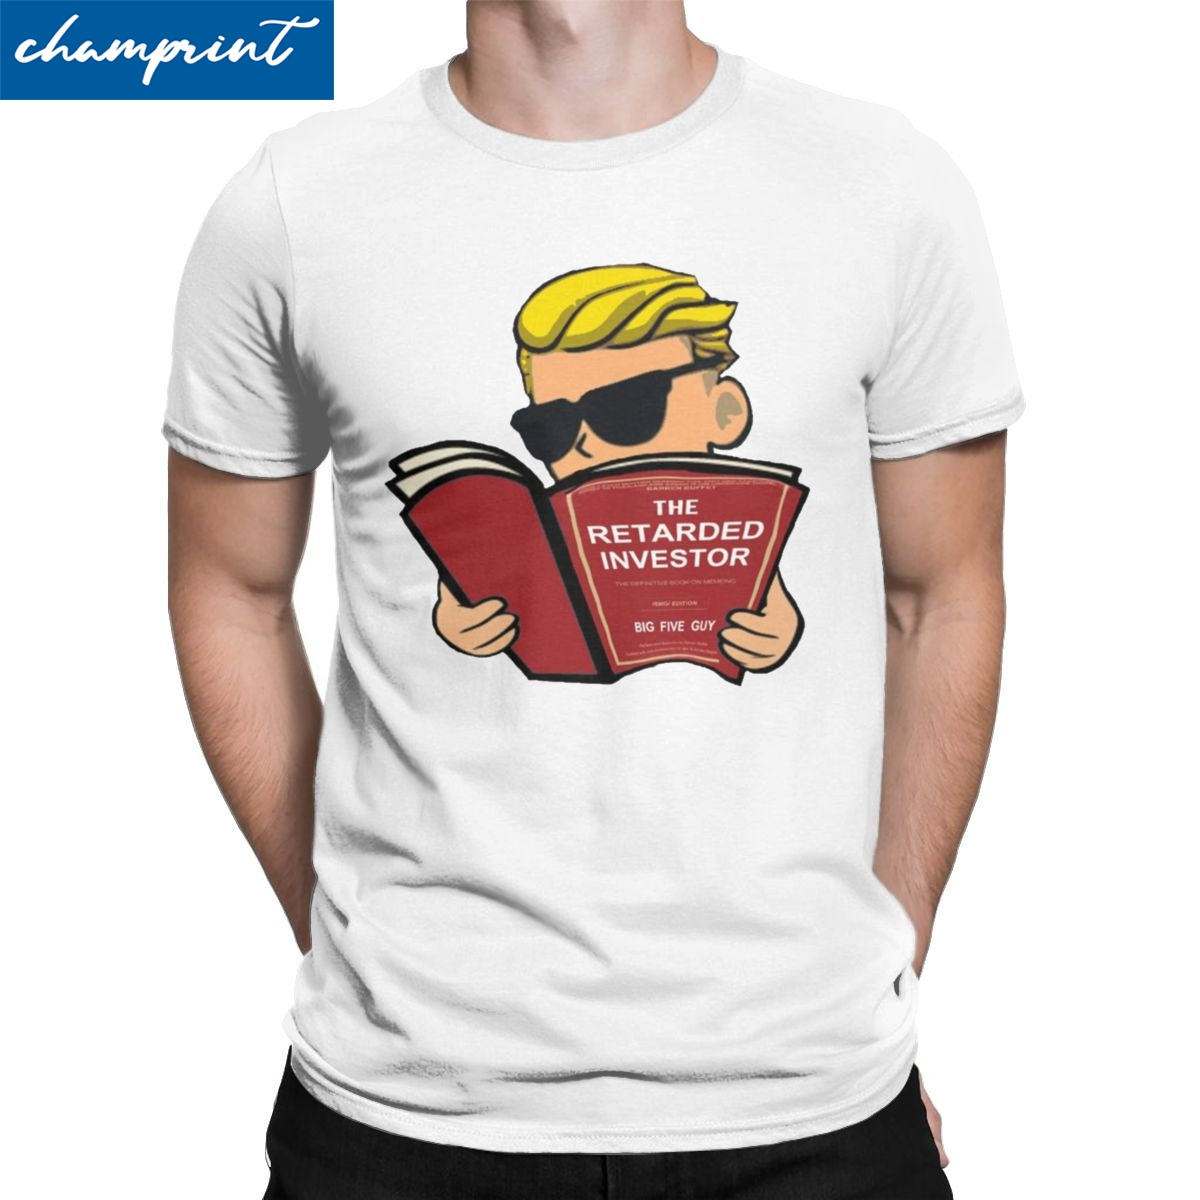 Wall Street Bets T Shirt Men Vintage T-Shirt Dogecoin Bitcoin Cryptocurrency Hodl Blockchain Tee Shirt Plus Size Clothing 1